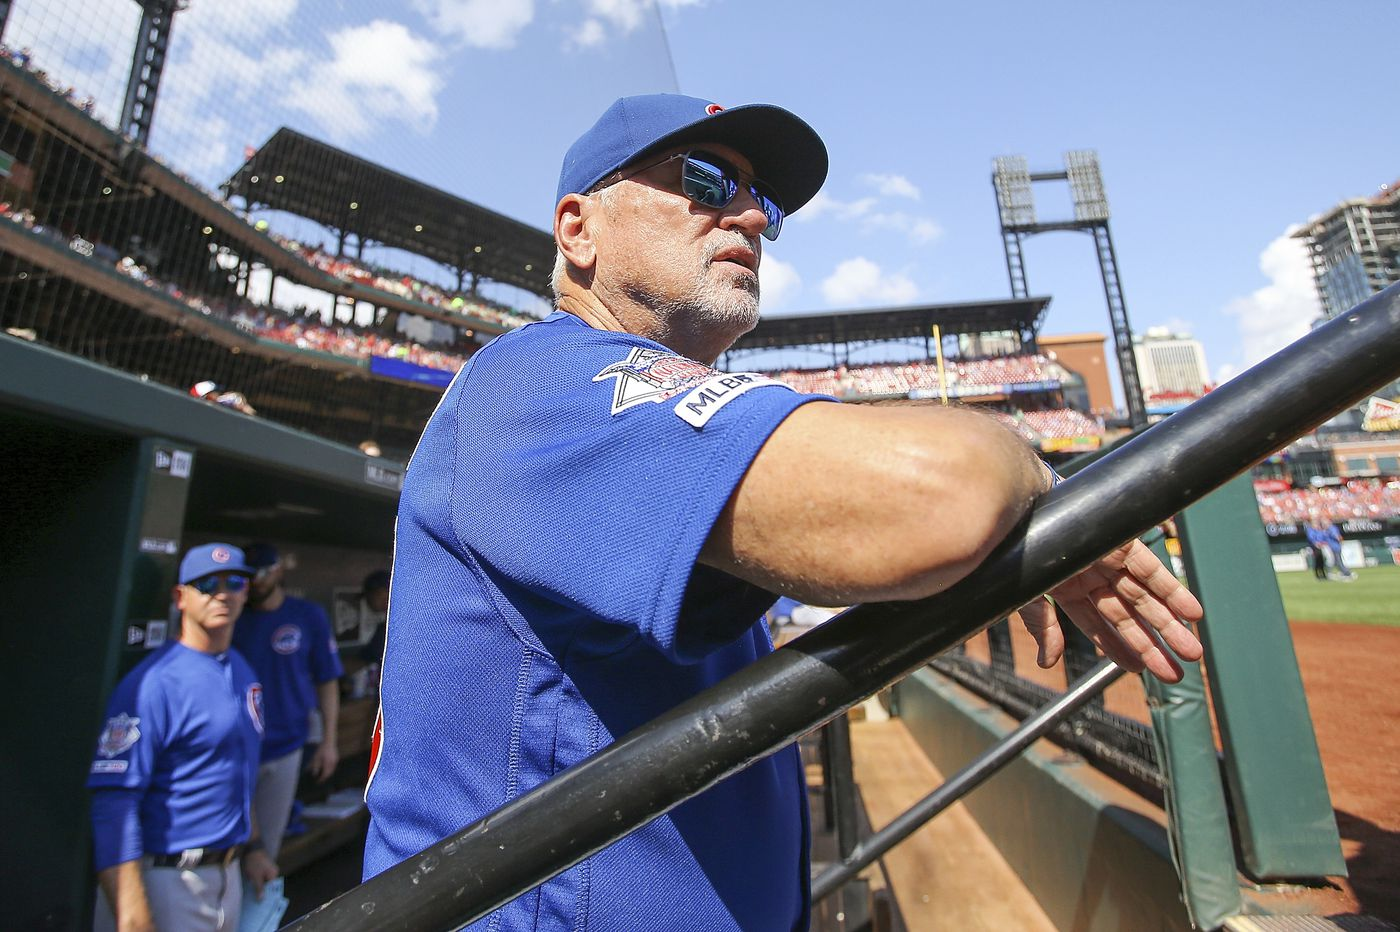 Buck Showalter, Joe Girardi are early favorites for Phillies manager job as Joe Maddon signs with Angels